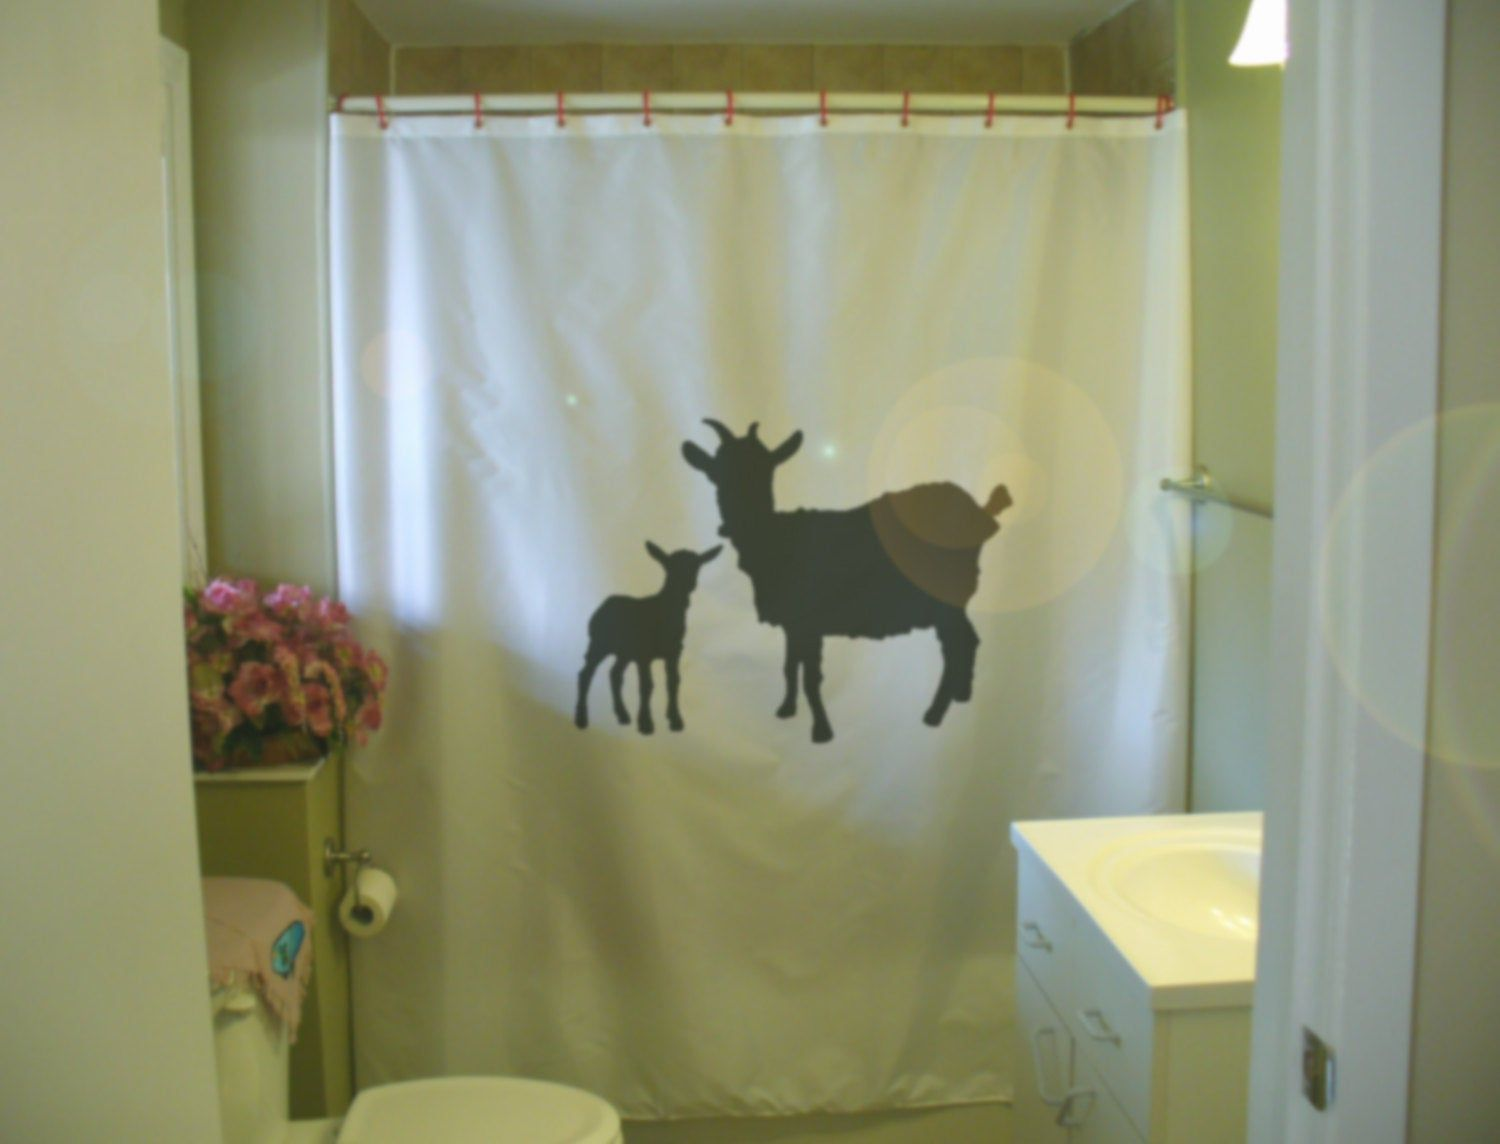 Mother Goat And Kid Shower Curtain Farm Animal Farming Nature